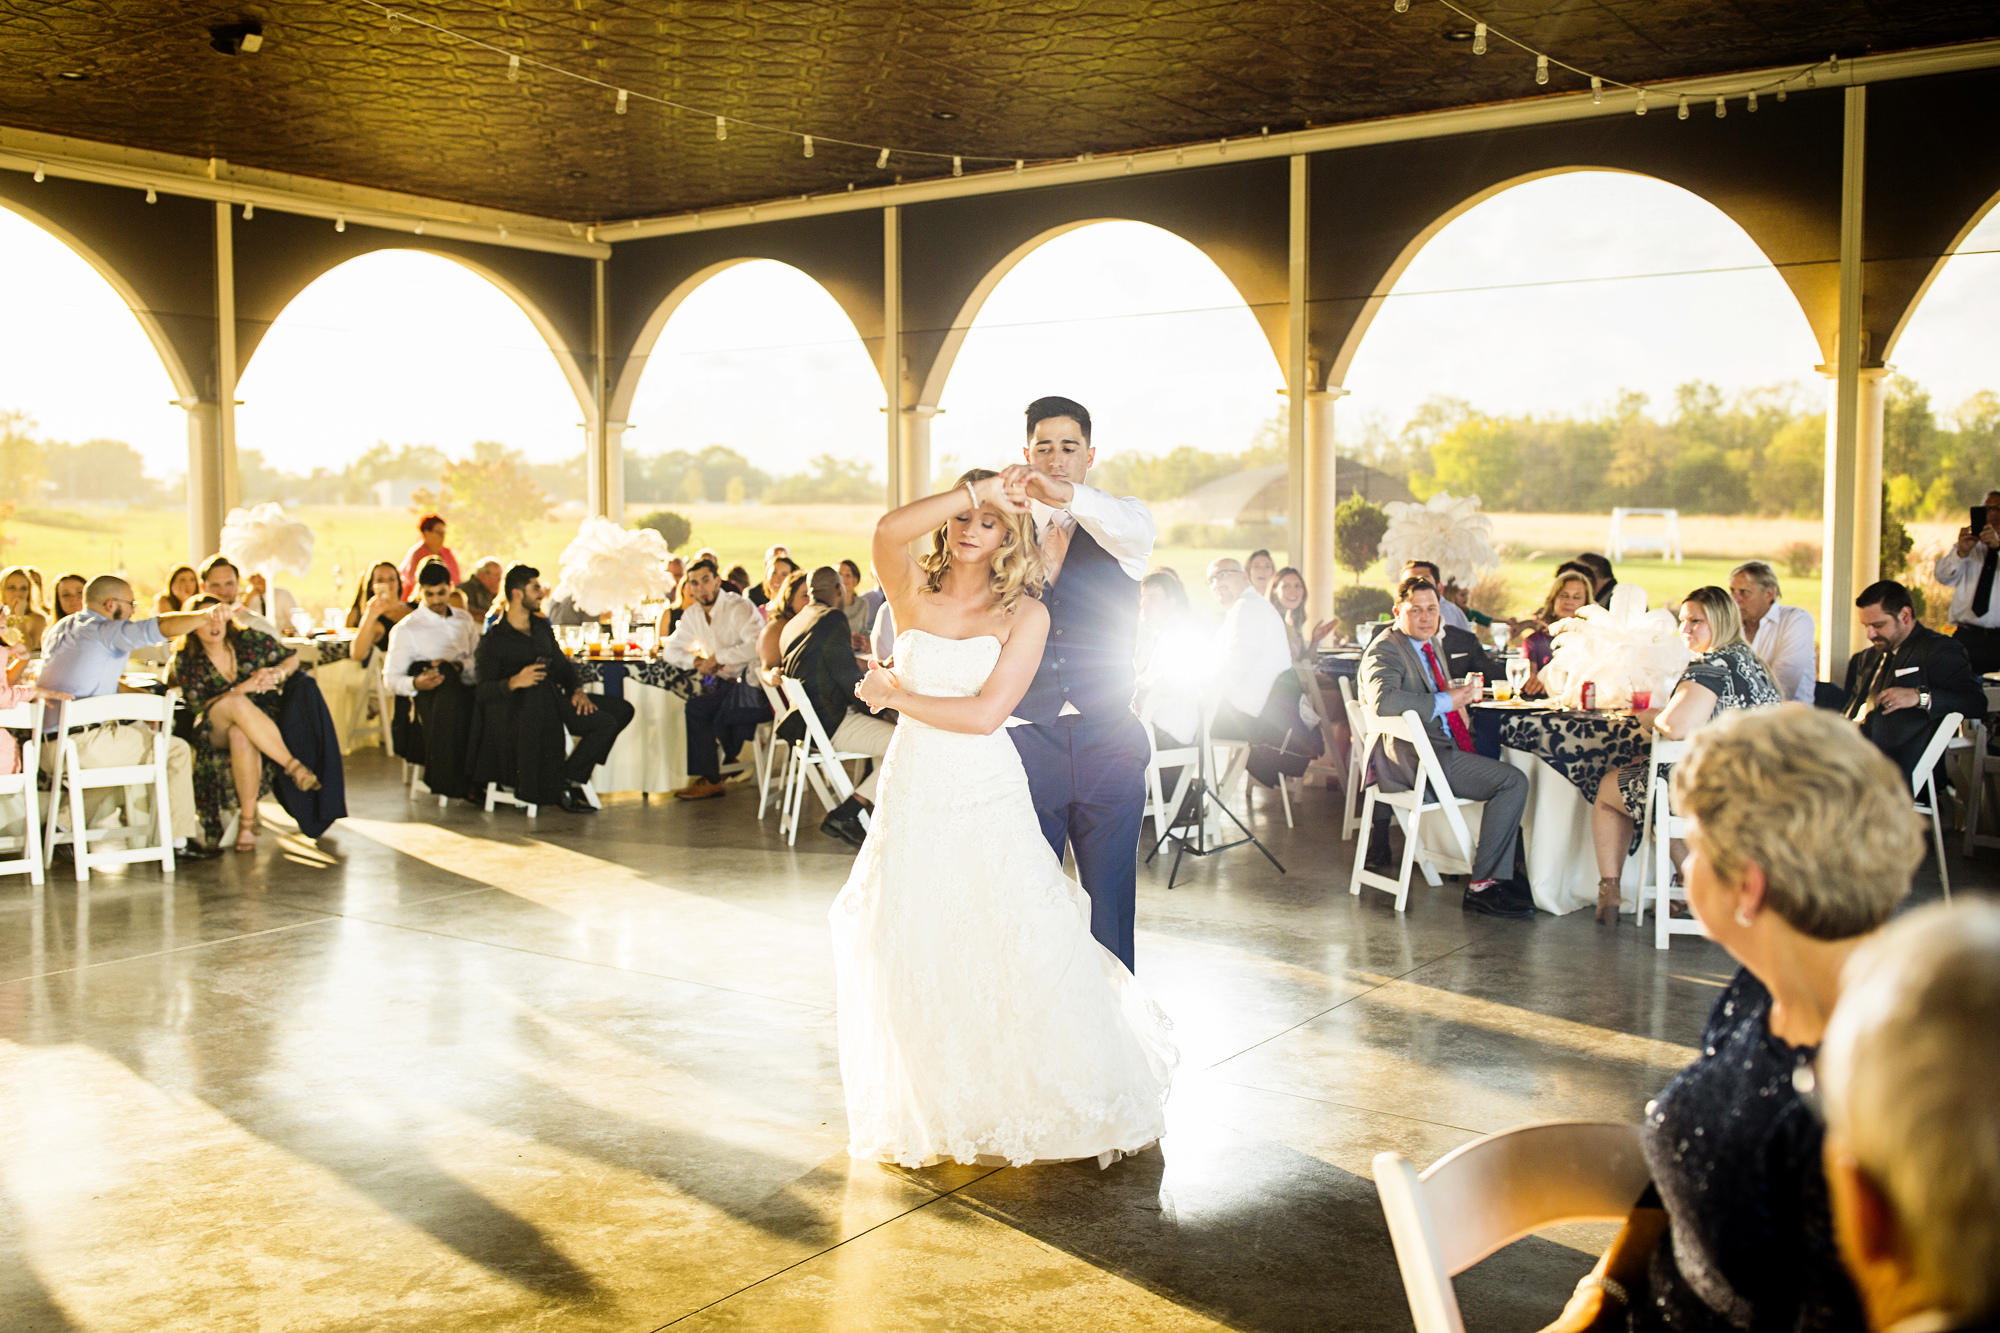 Seriously_Sabrina_Photography_Dayton_Ohio_Great_Gatsby_Wedding_Cedar_Springs_Pavillion_Harper_83.jpg